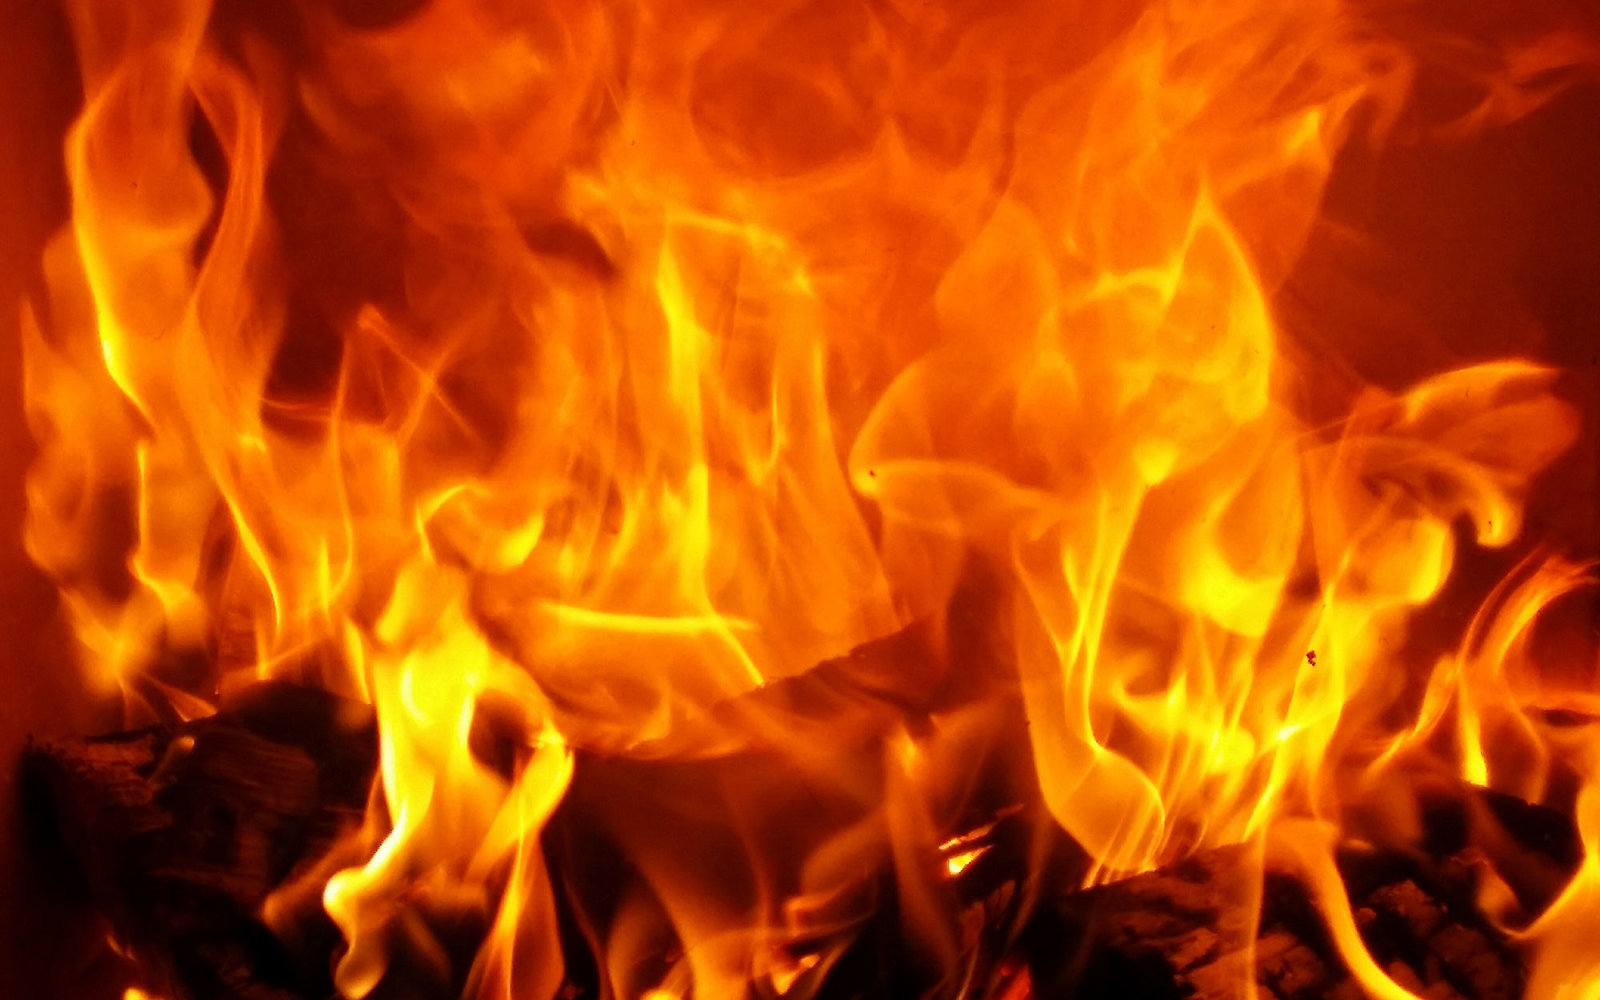 Close-up image of flames